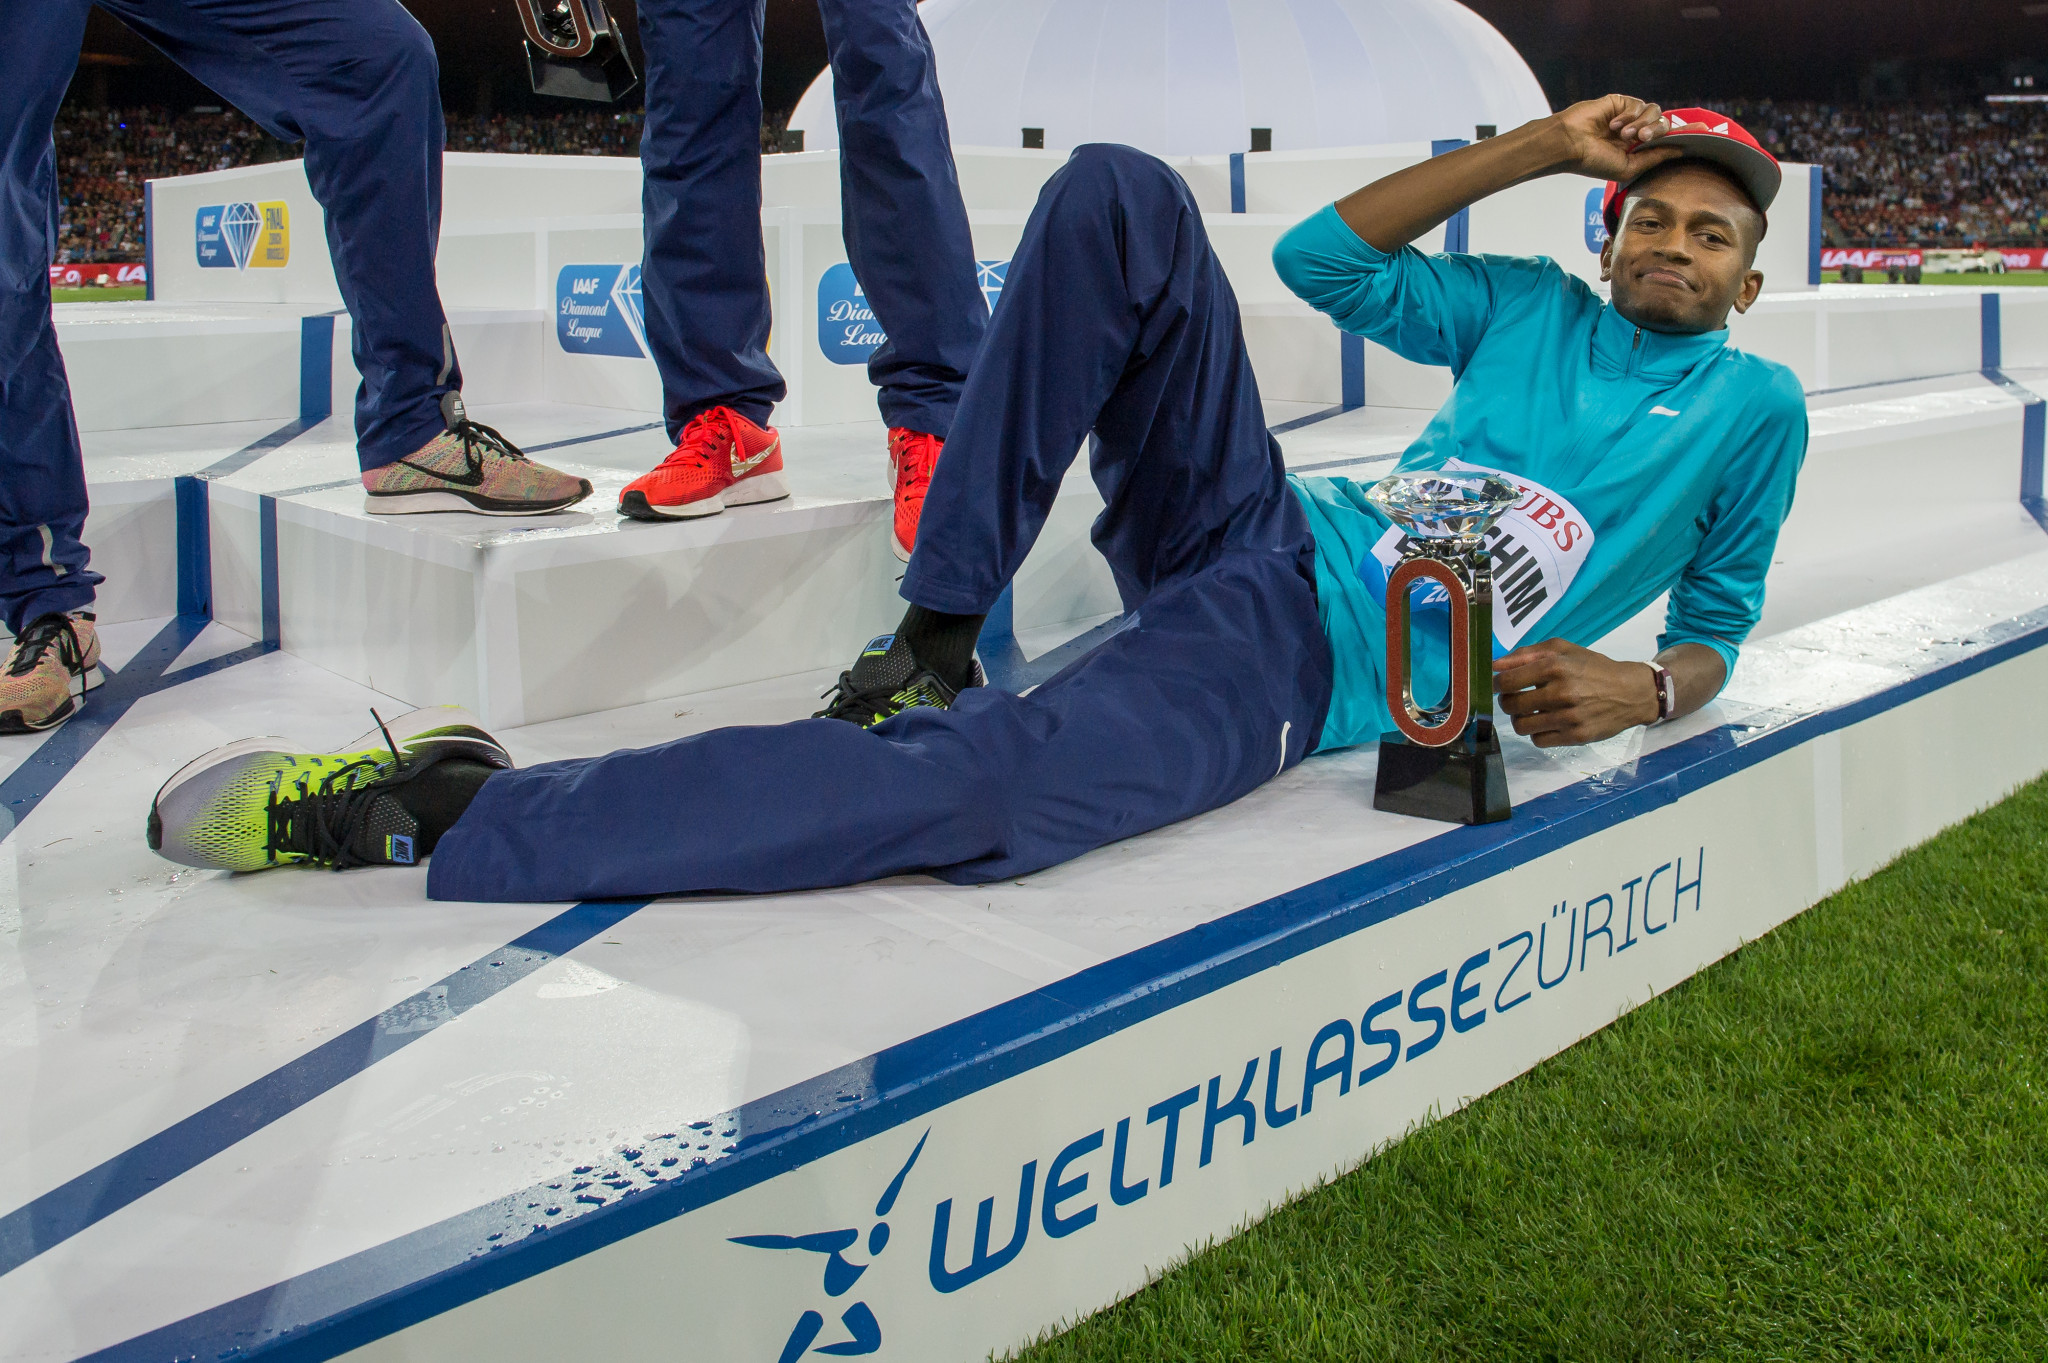 Qatar's world high jump champion Mutaz Essa Barshim with his Diamond Trophy in Zurich this year - the IAAF have confirmed the ongoing value of the Diamond League event ©Getty Images